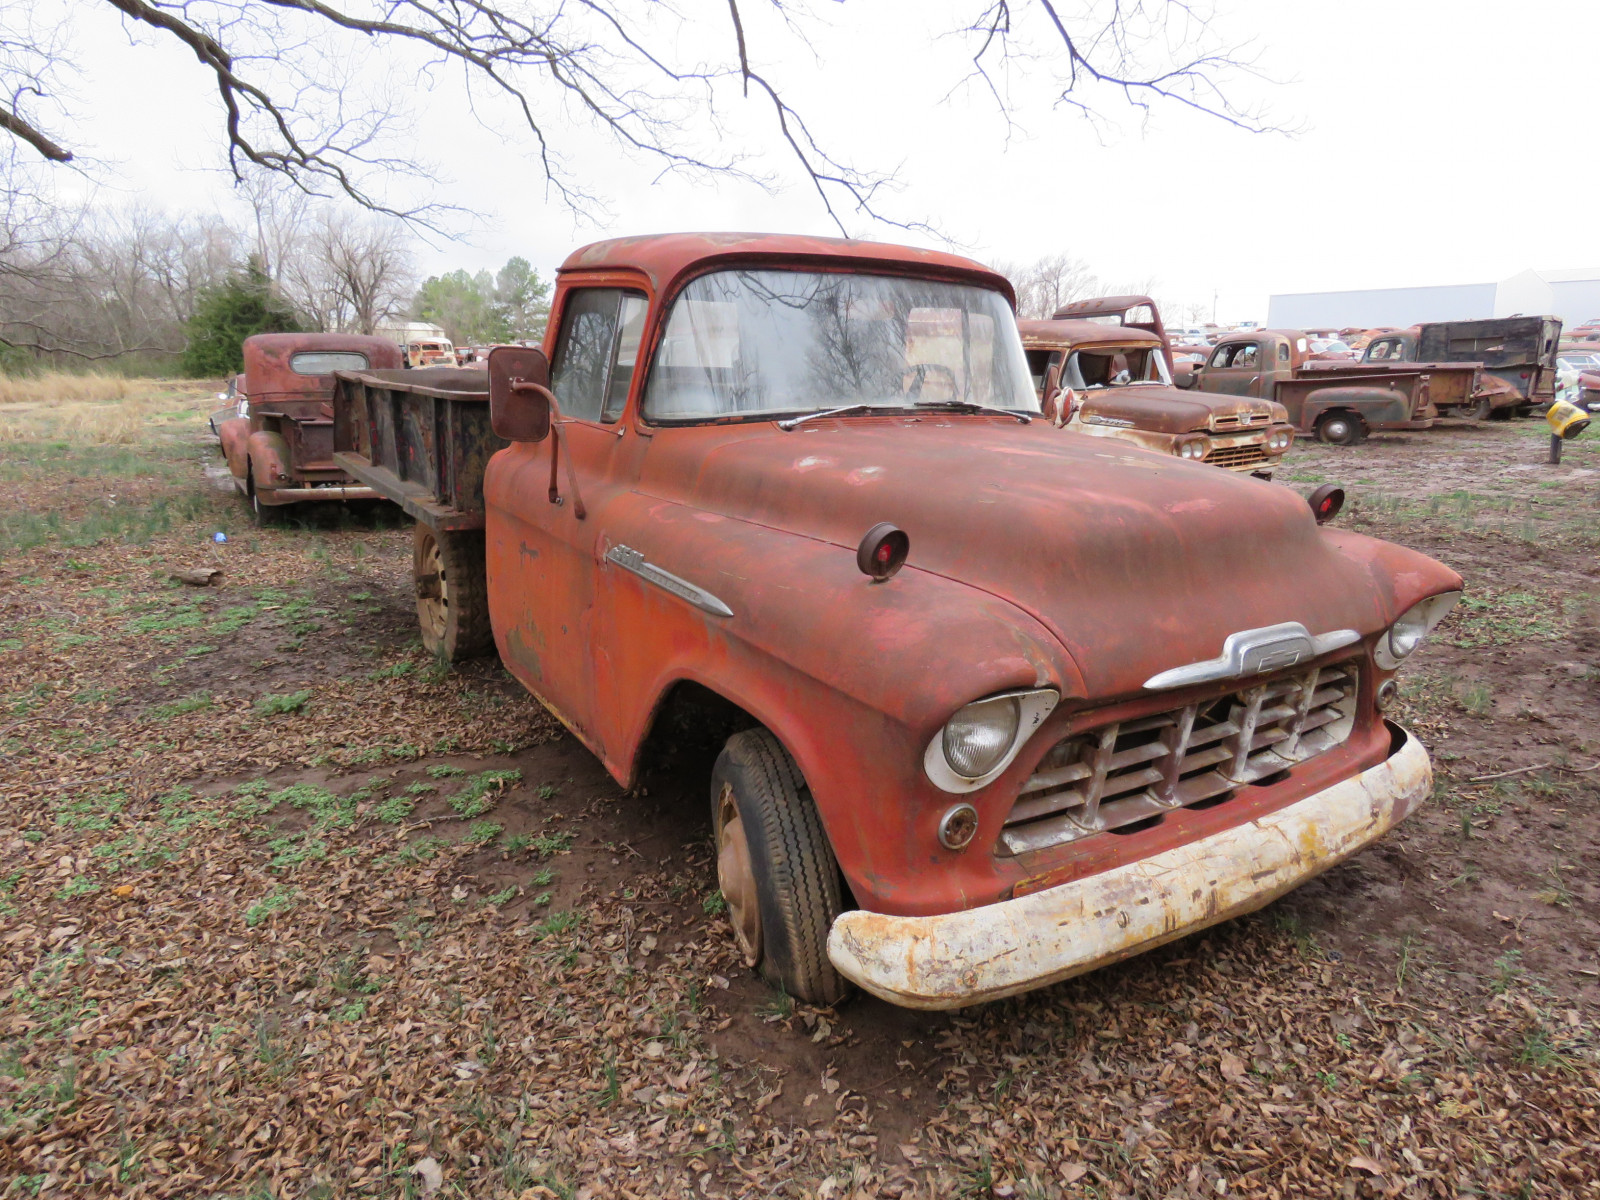 1955 Chevrolet 3600 Series Truck - Image 2